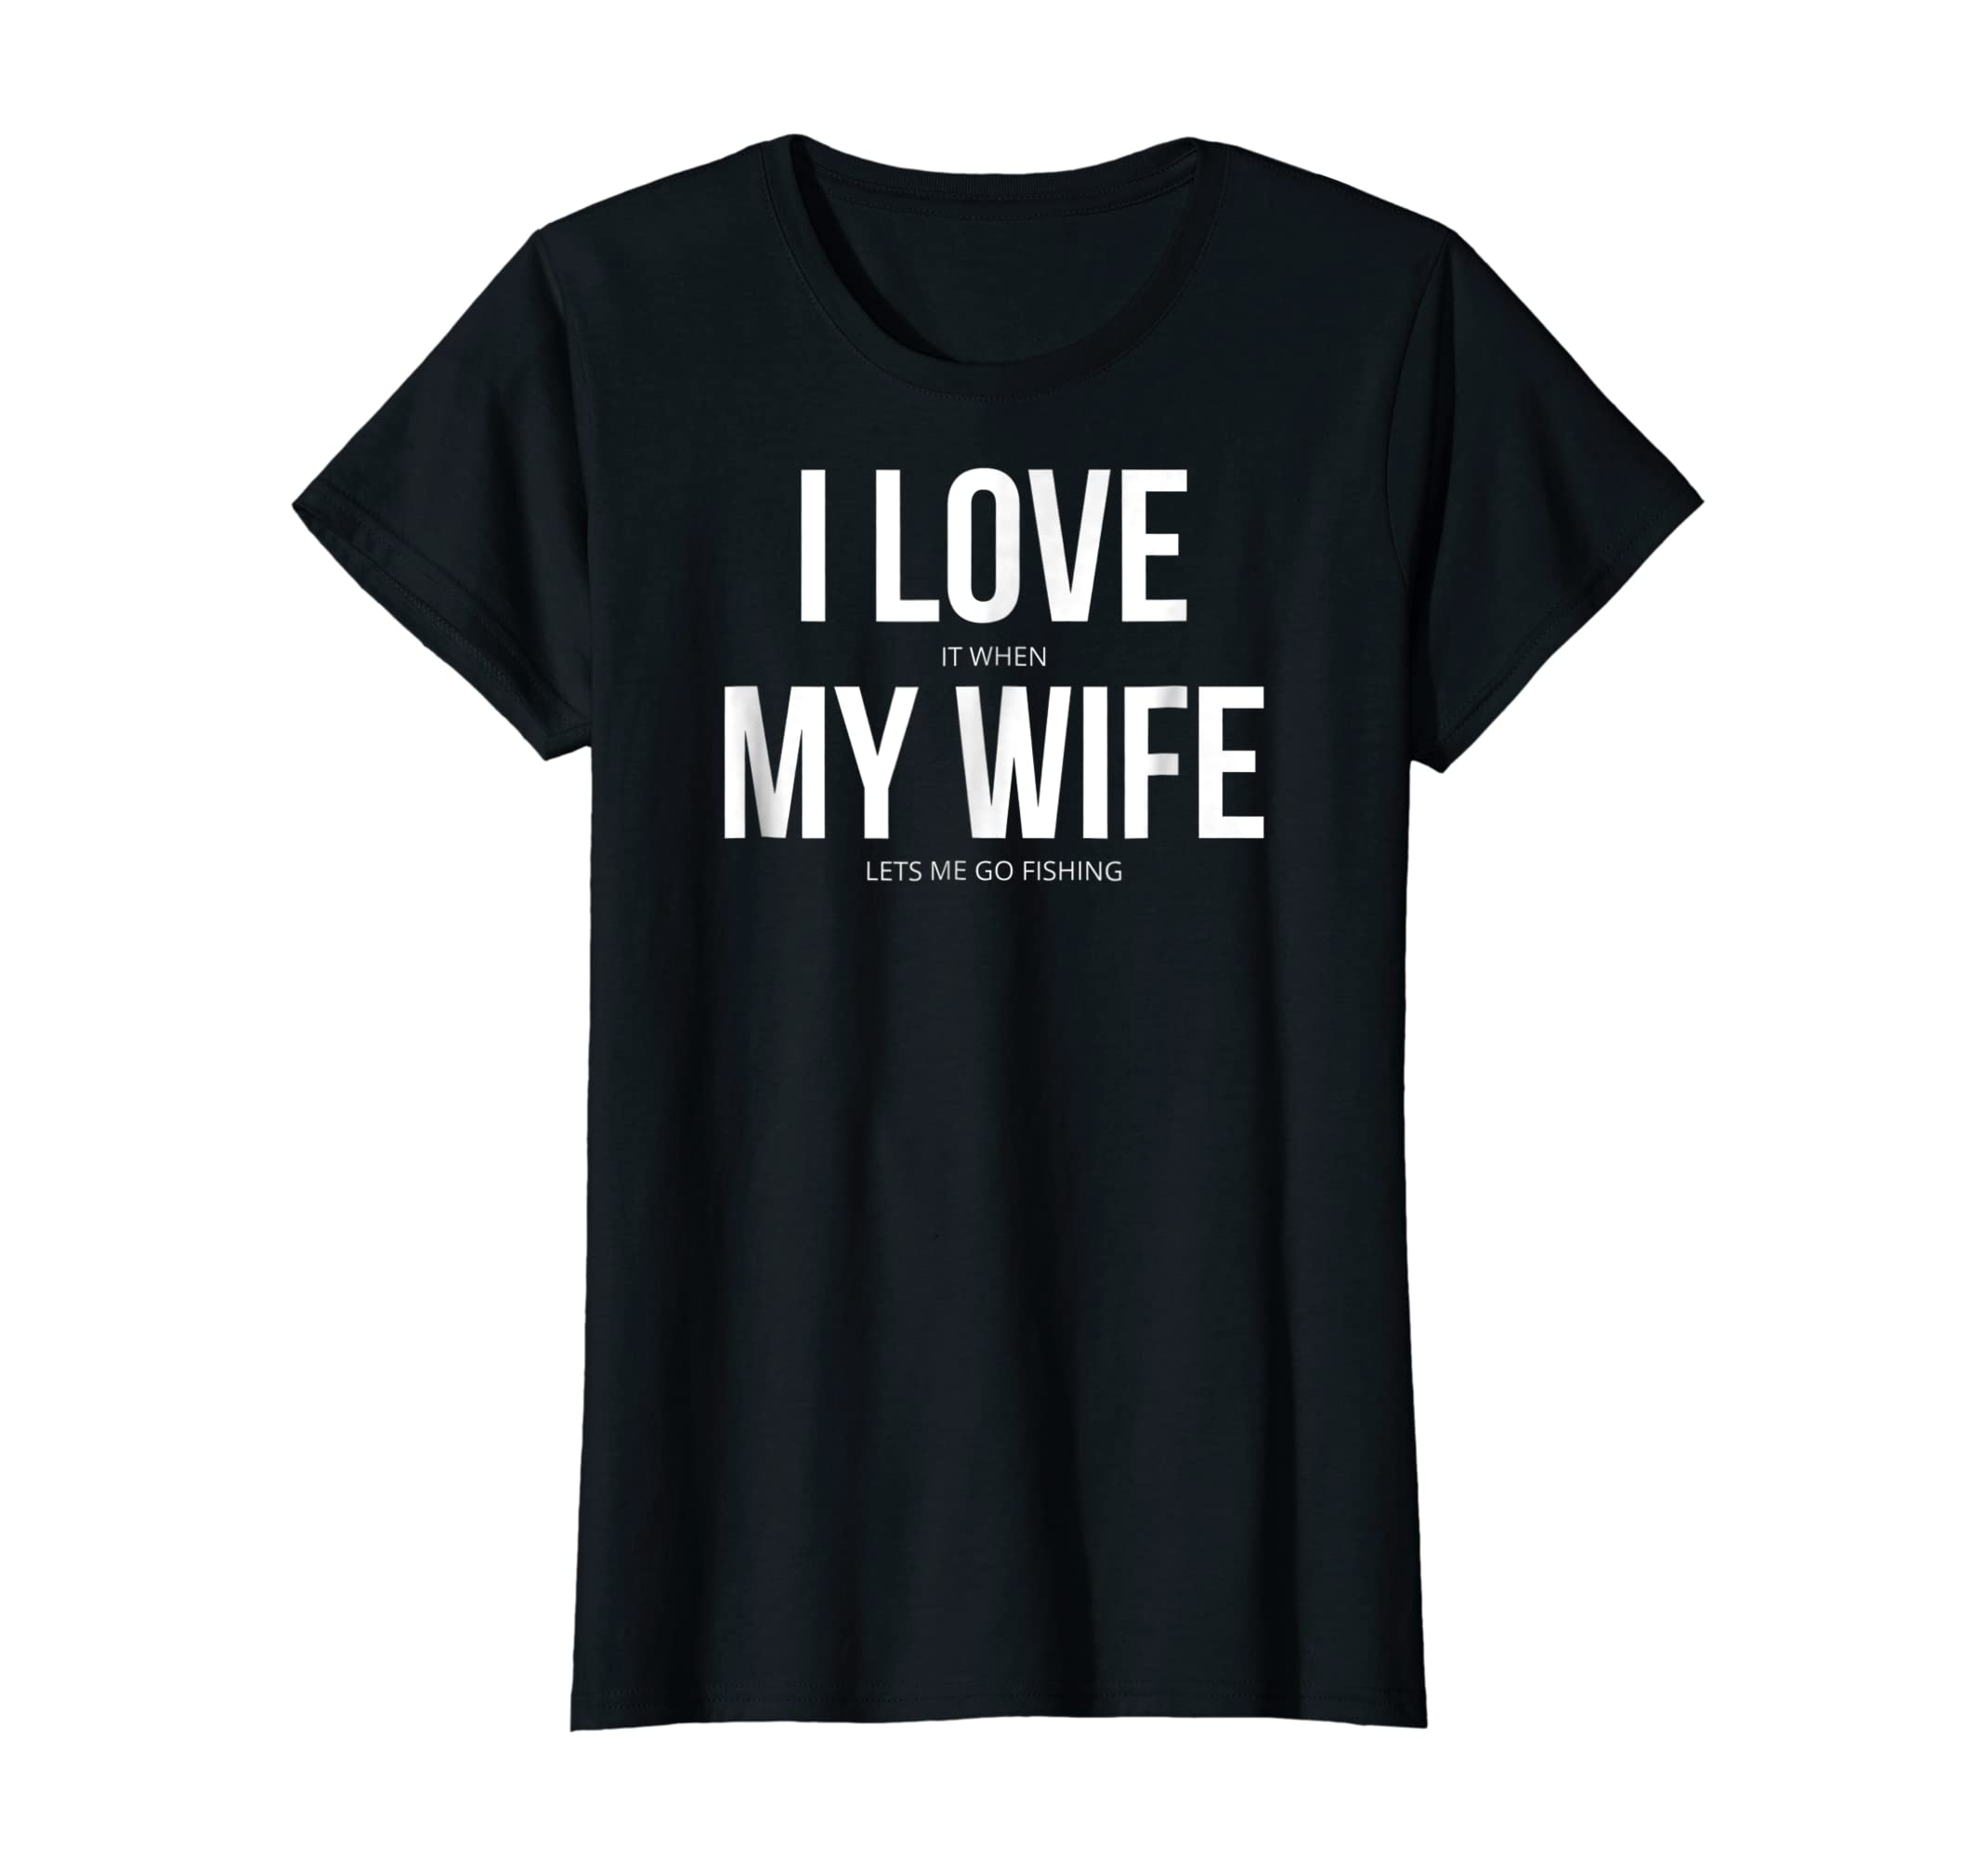 Funny I Love It When My Wife Lets Me Go Fishing T-Shirt-Women's T-Shirt-Black